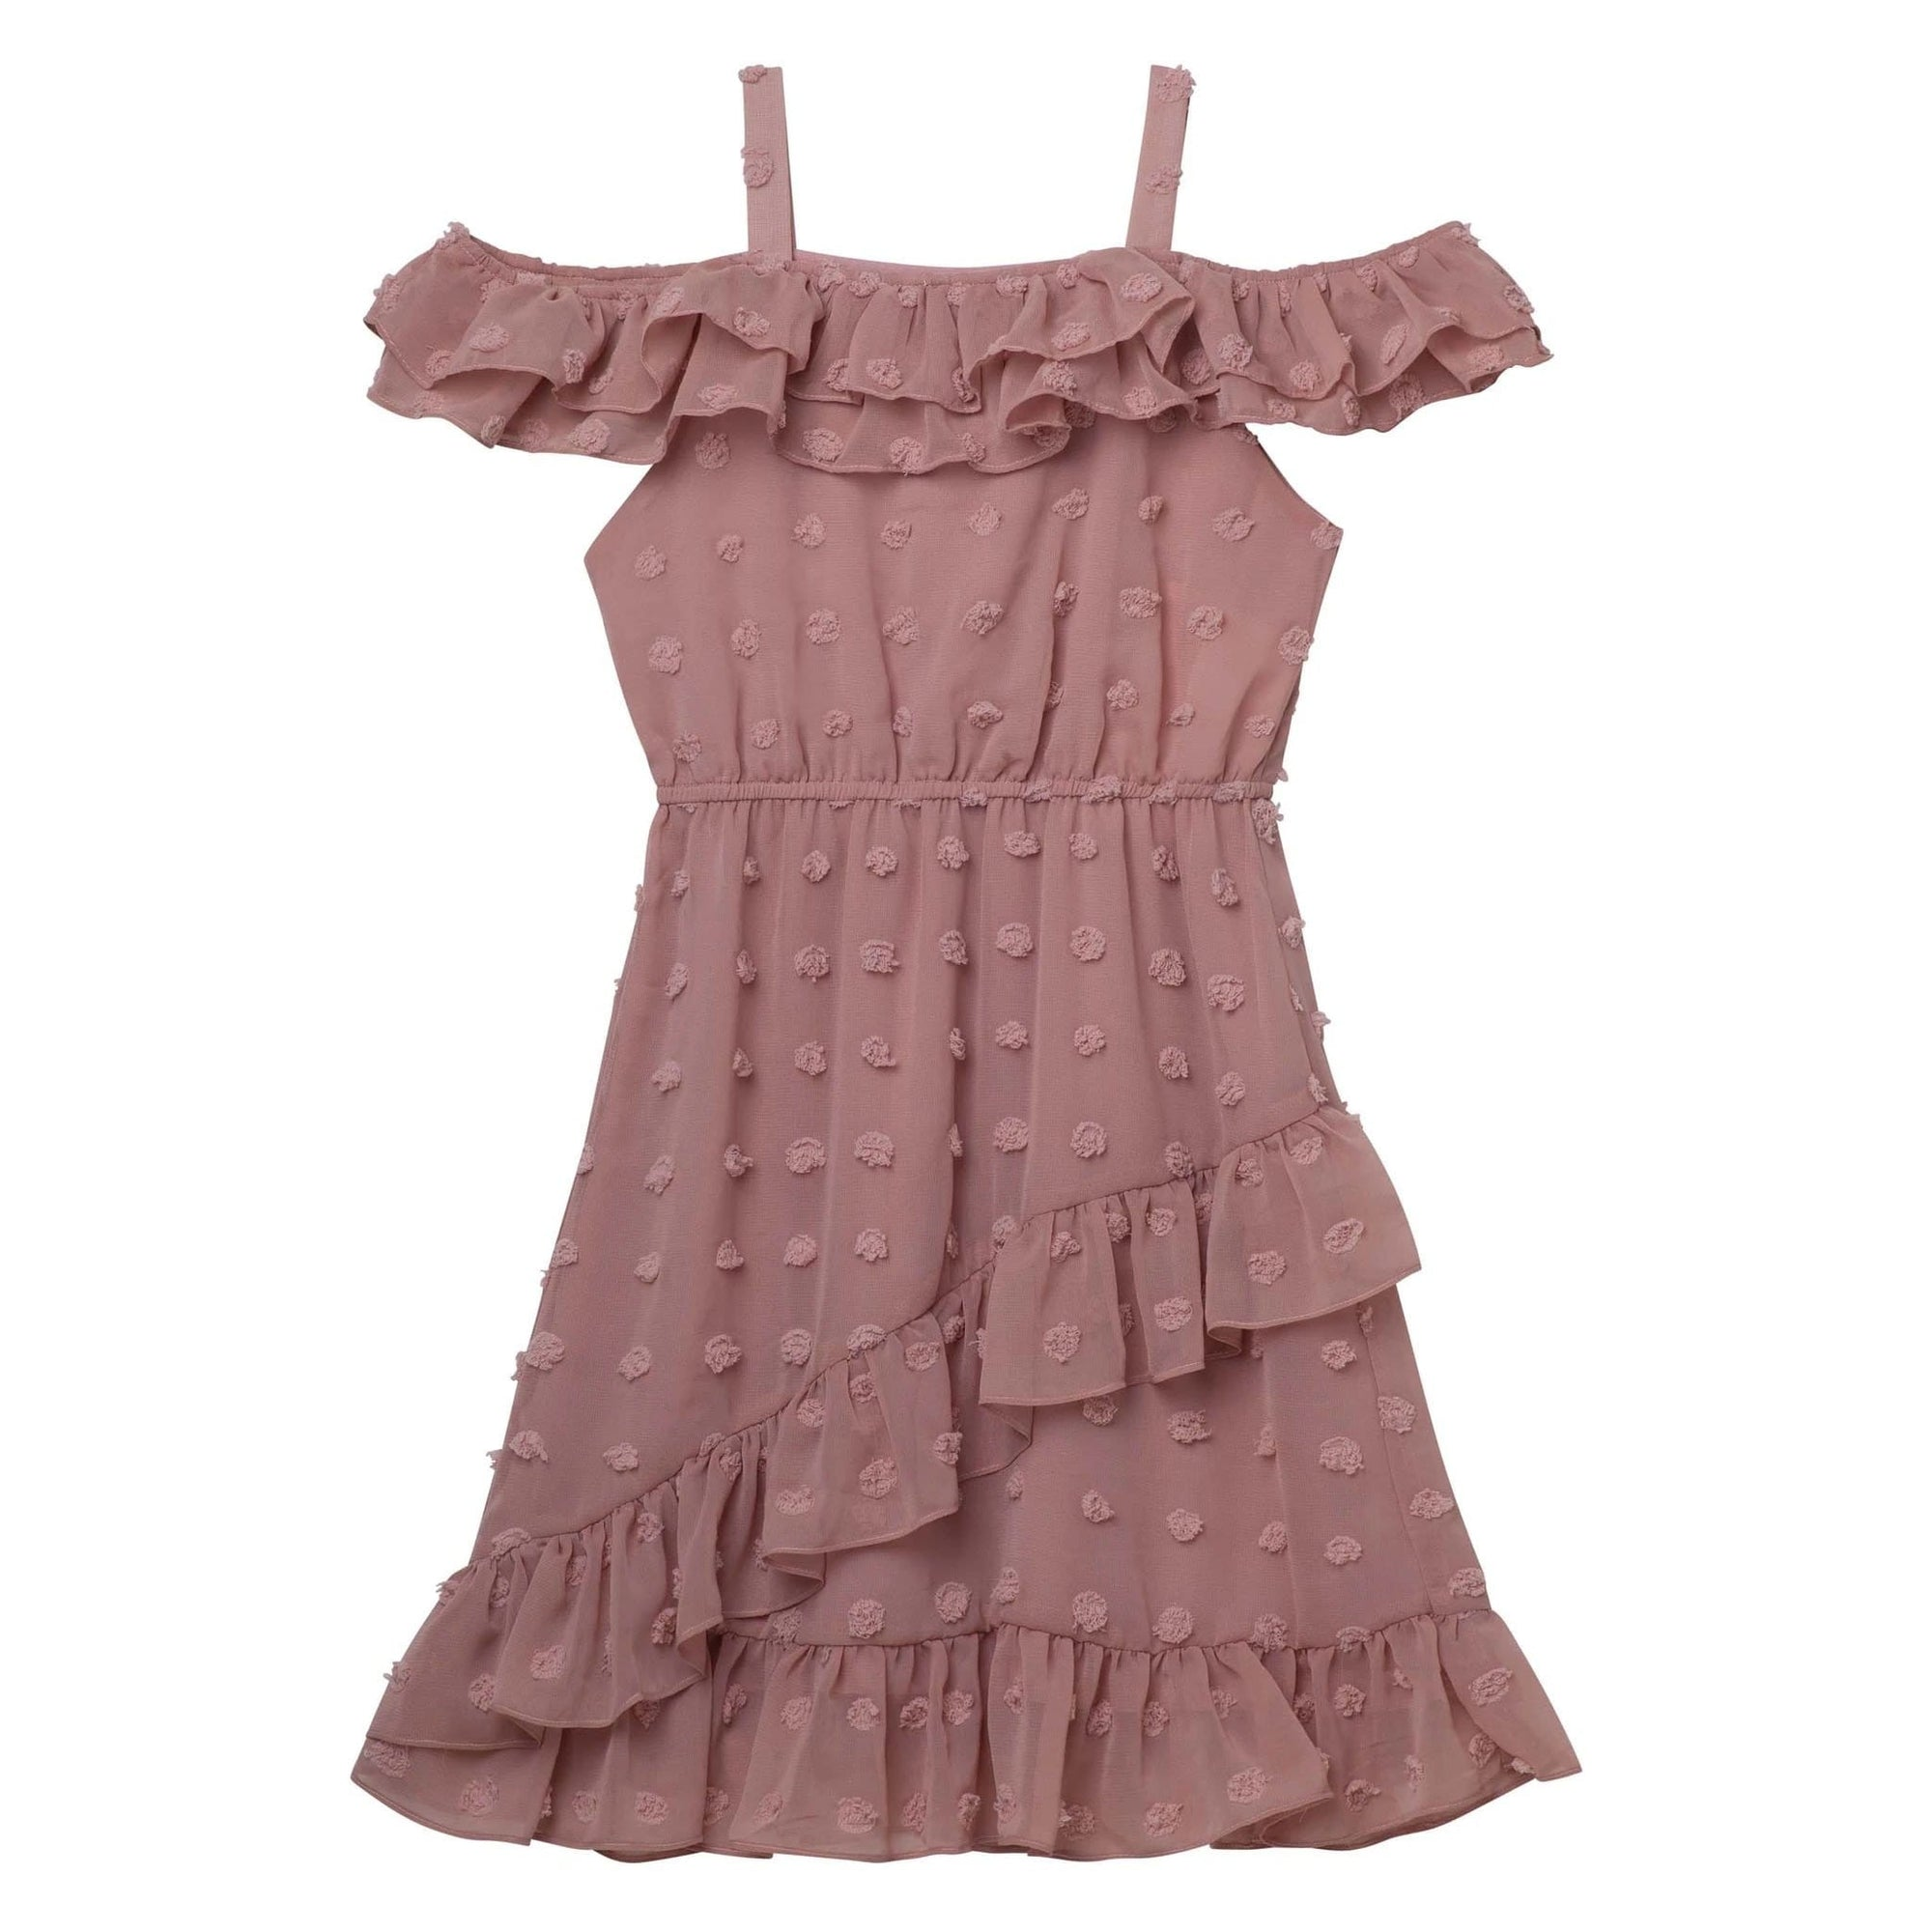 Designer Kidz Taylor Frill Dress Dusty Pink Embroidery